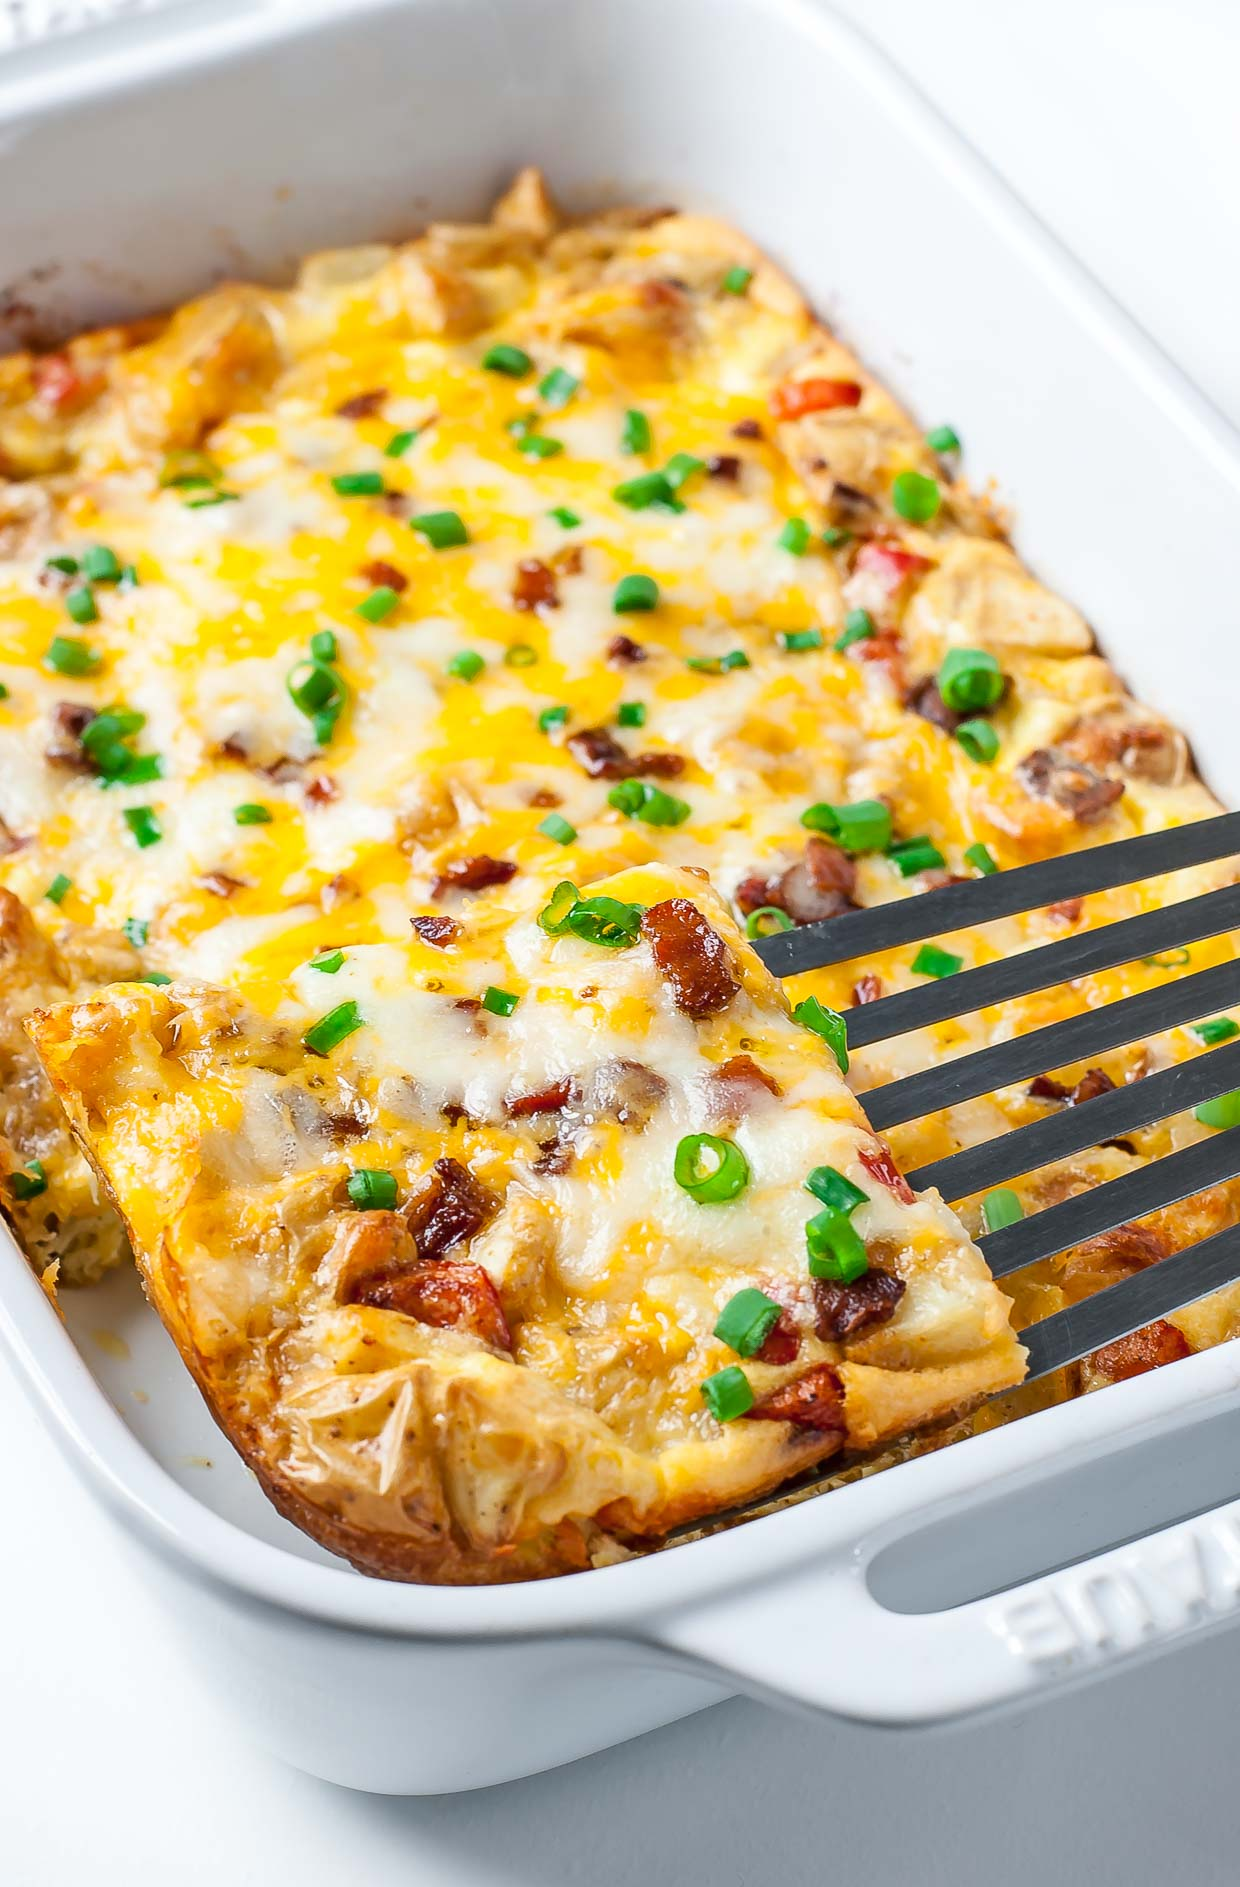 Jan 25, · Whisk together eggs, milk, ground mustard, and pepper. Pour egg mixture evenly in each muffin tin. Sprinkle a little dried Parsley on the top of each one. Bake for minutes or until golden brown on top and cooked through the middle/5(18).